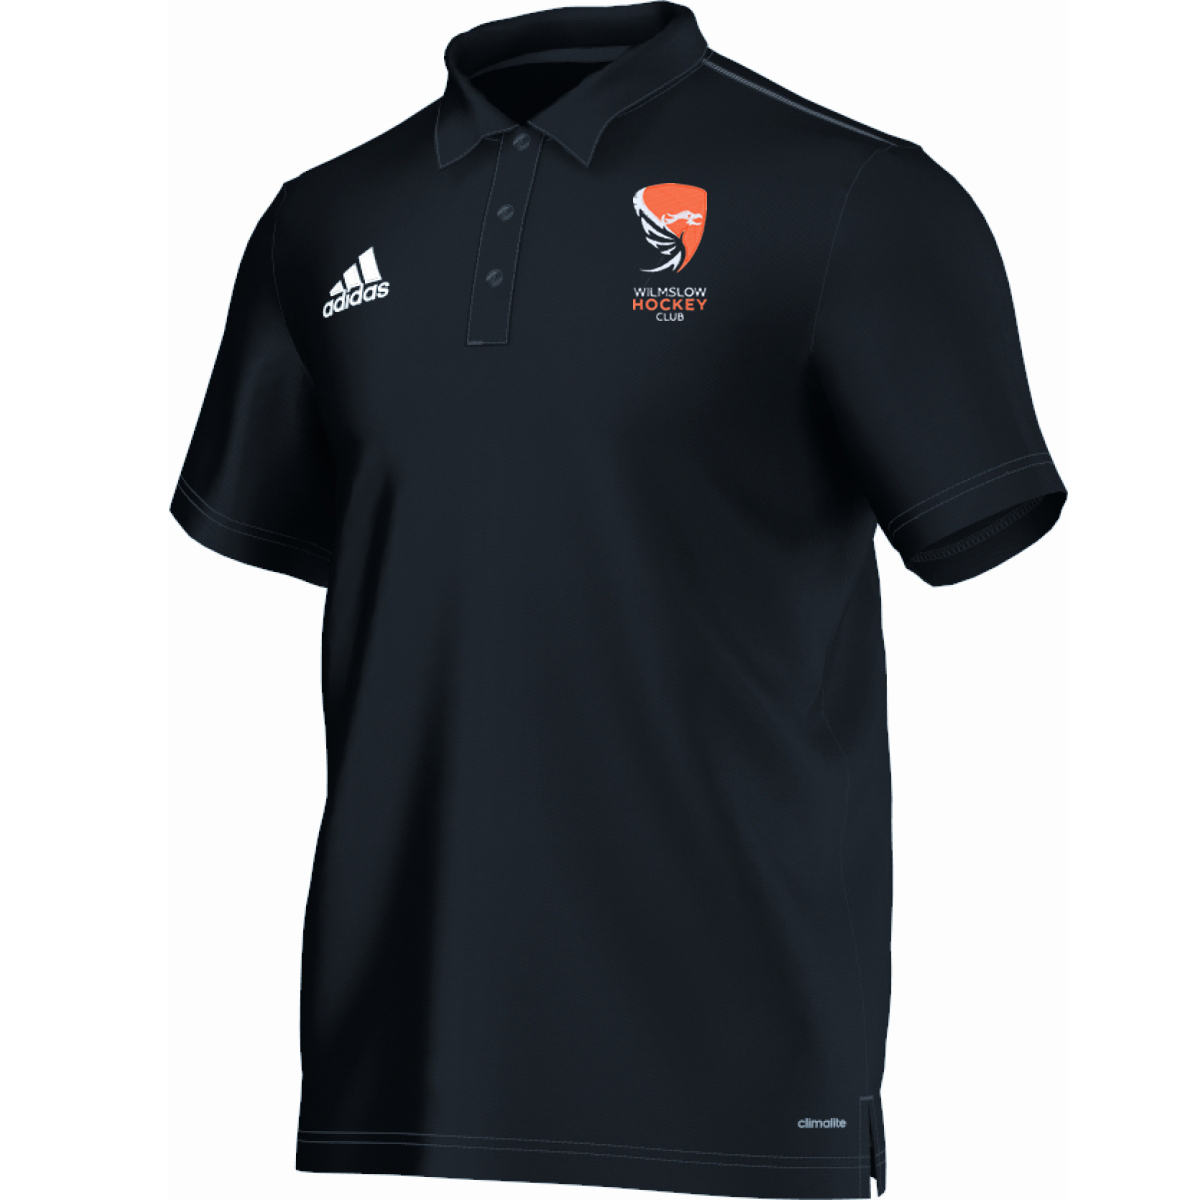 Wilmslow Hockey Club Black Adidas Polo Shirt